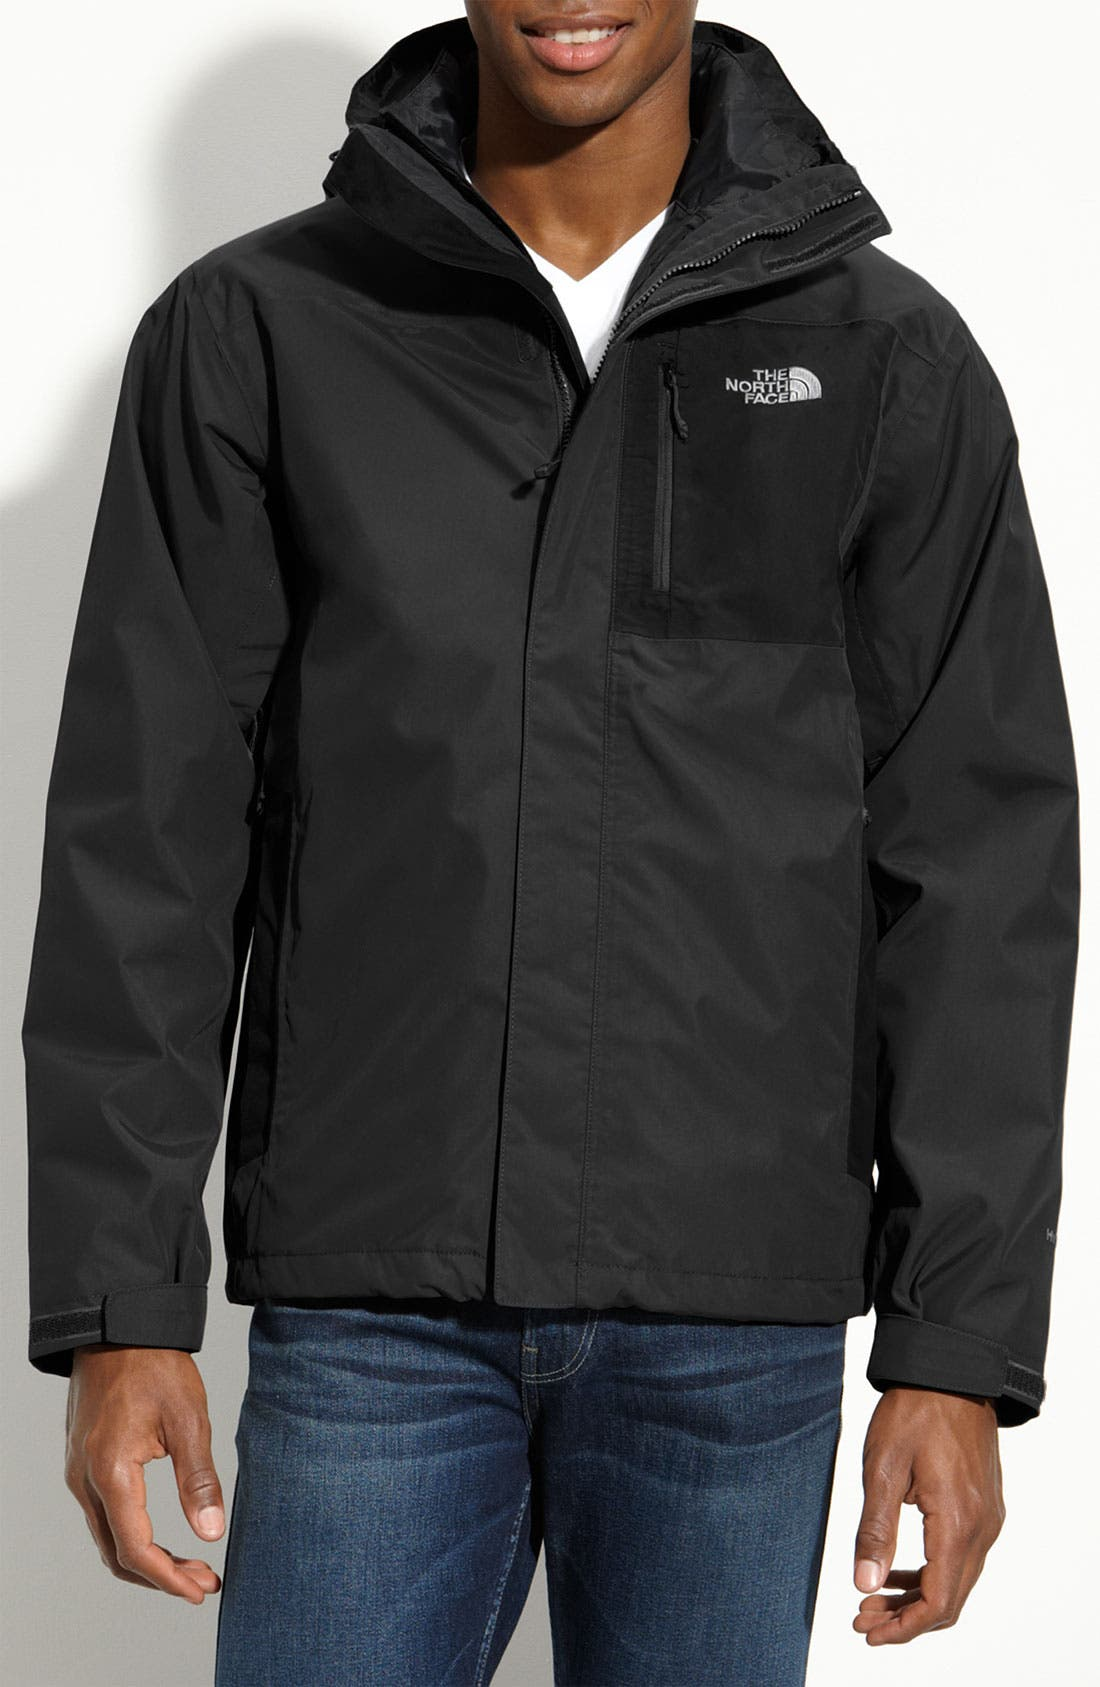 Alternate Image 1 Selected - The North Face 'Cassius' TriClimate® 3-in-1 Jacket